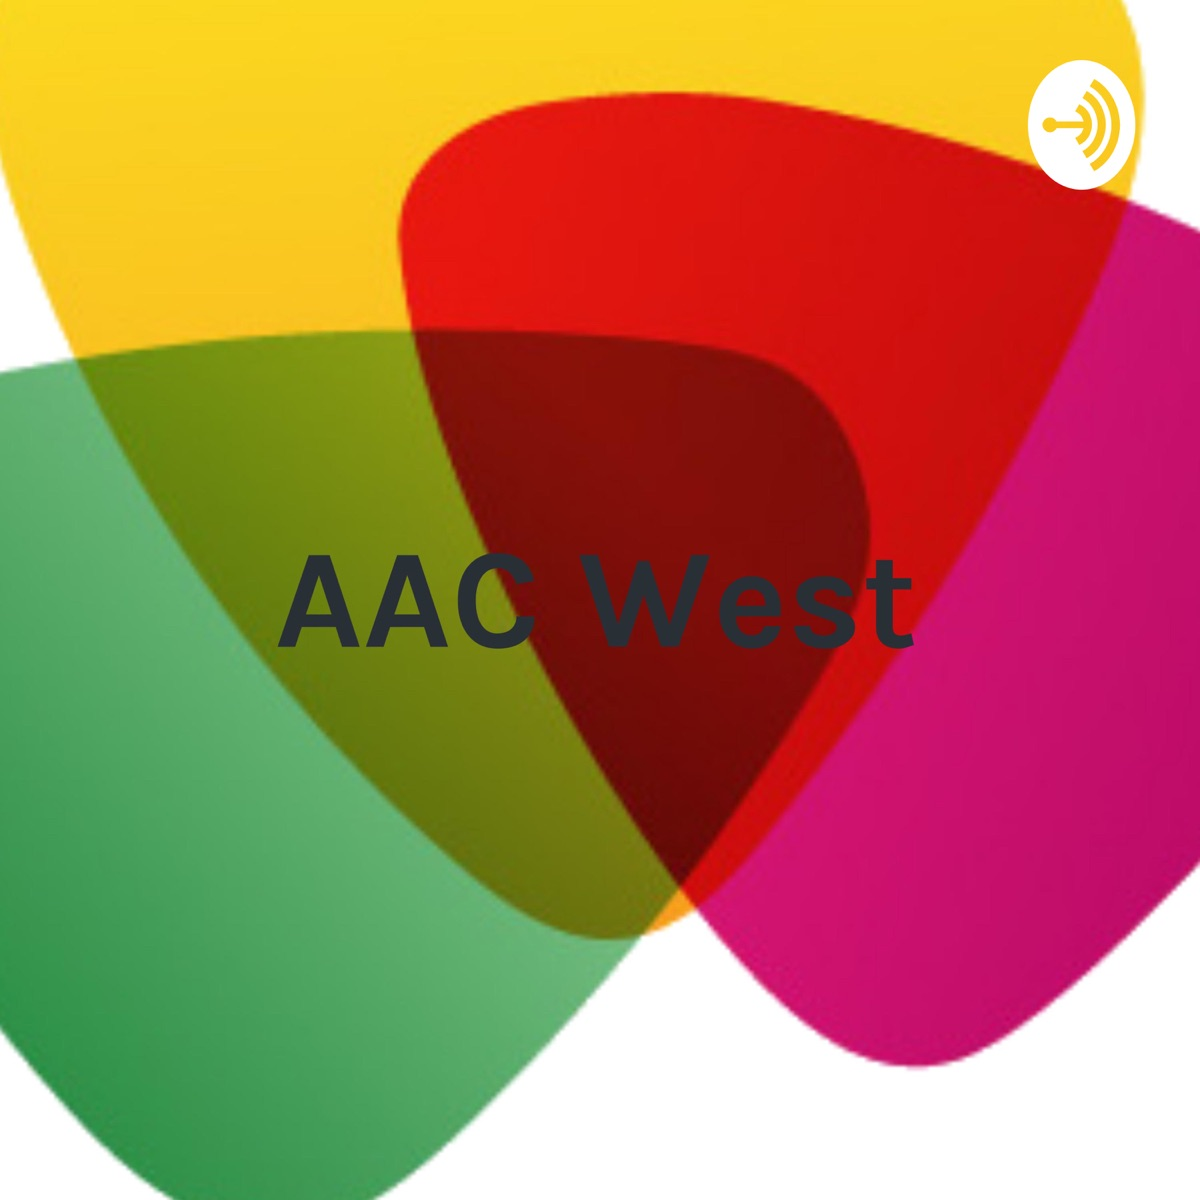 AAC West - Accessing Abortion Care in Ireland